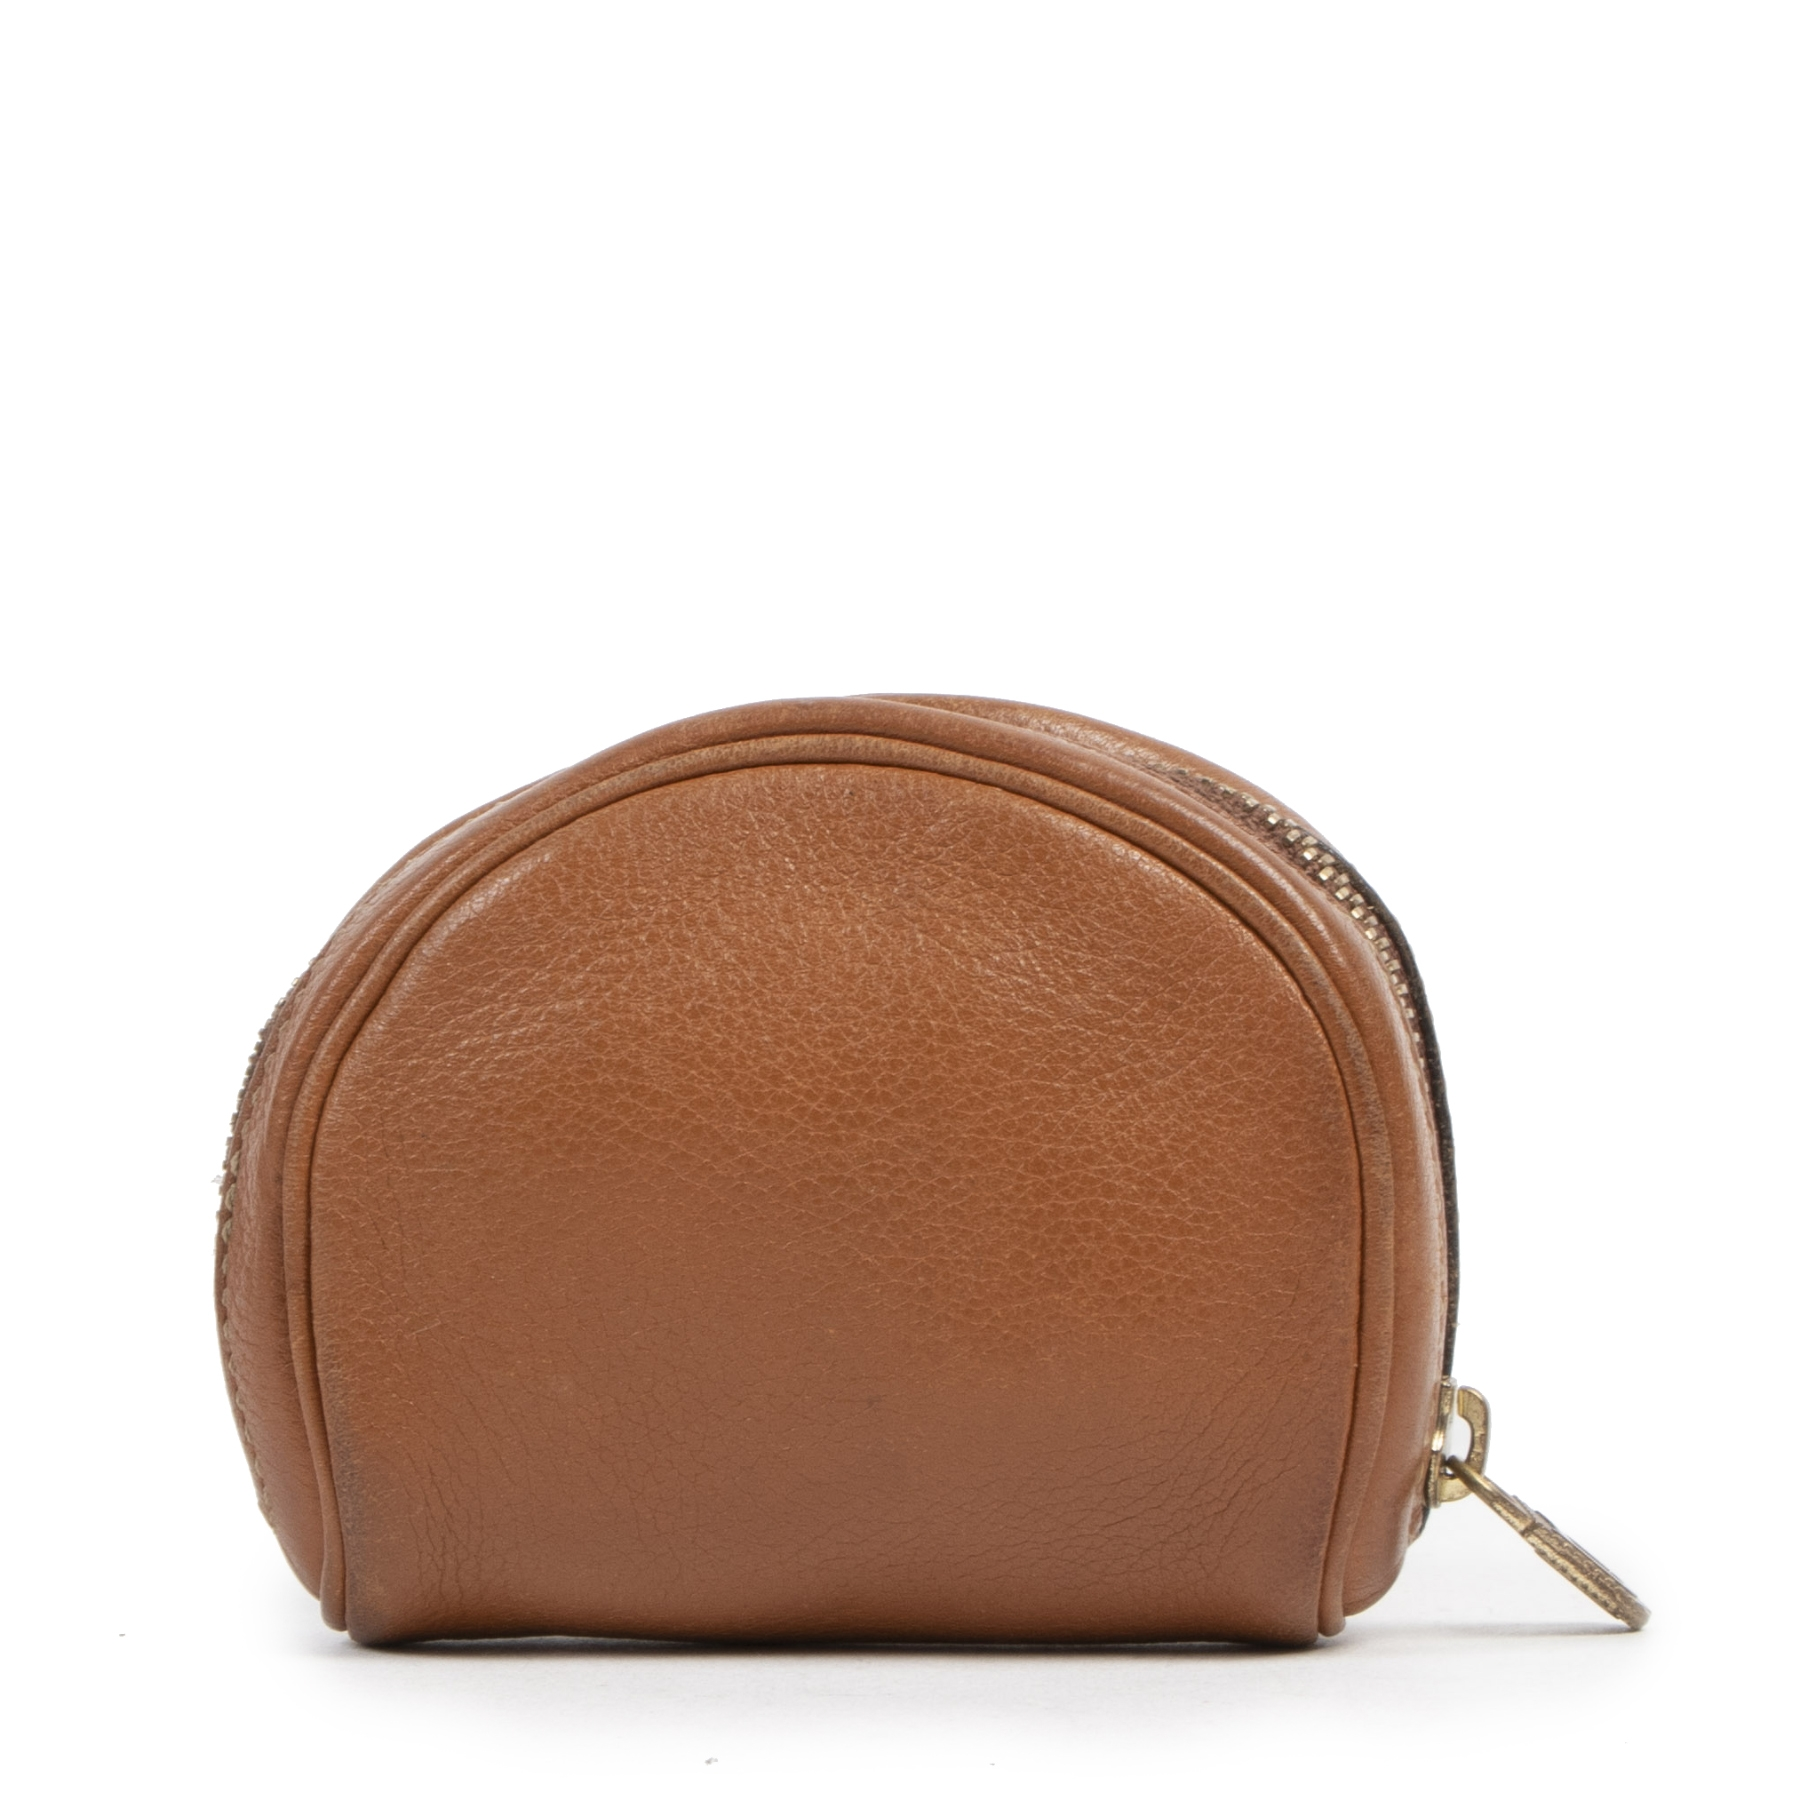 Authentieke tweedehands vintage Delvaux Cognac Leather Coin Purse koop online webshop LabelLOV